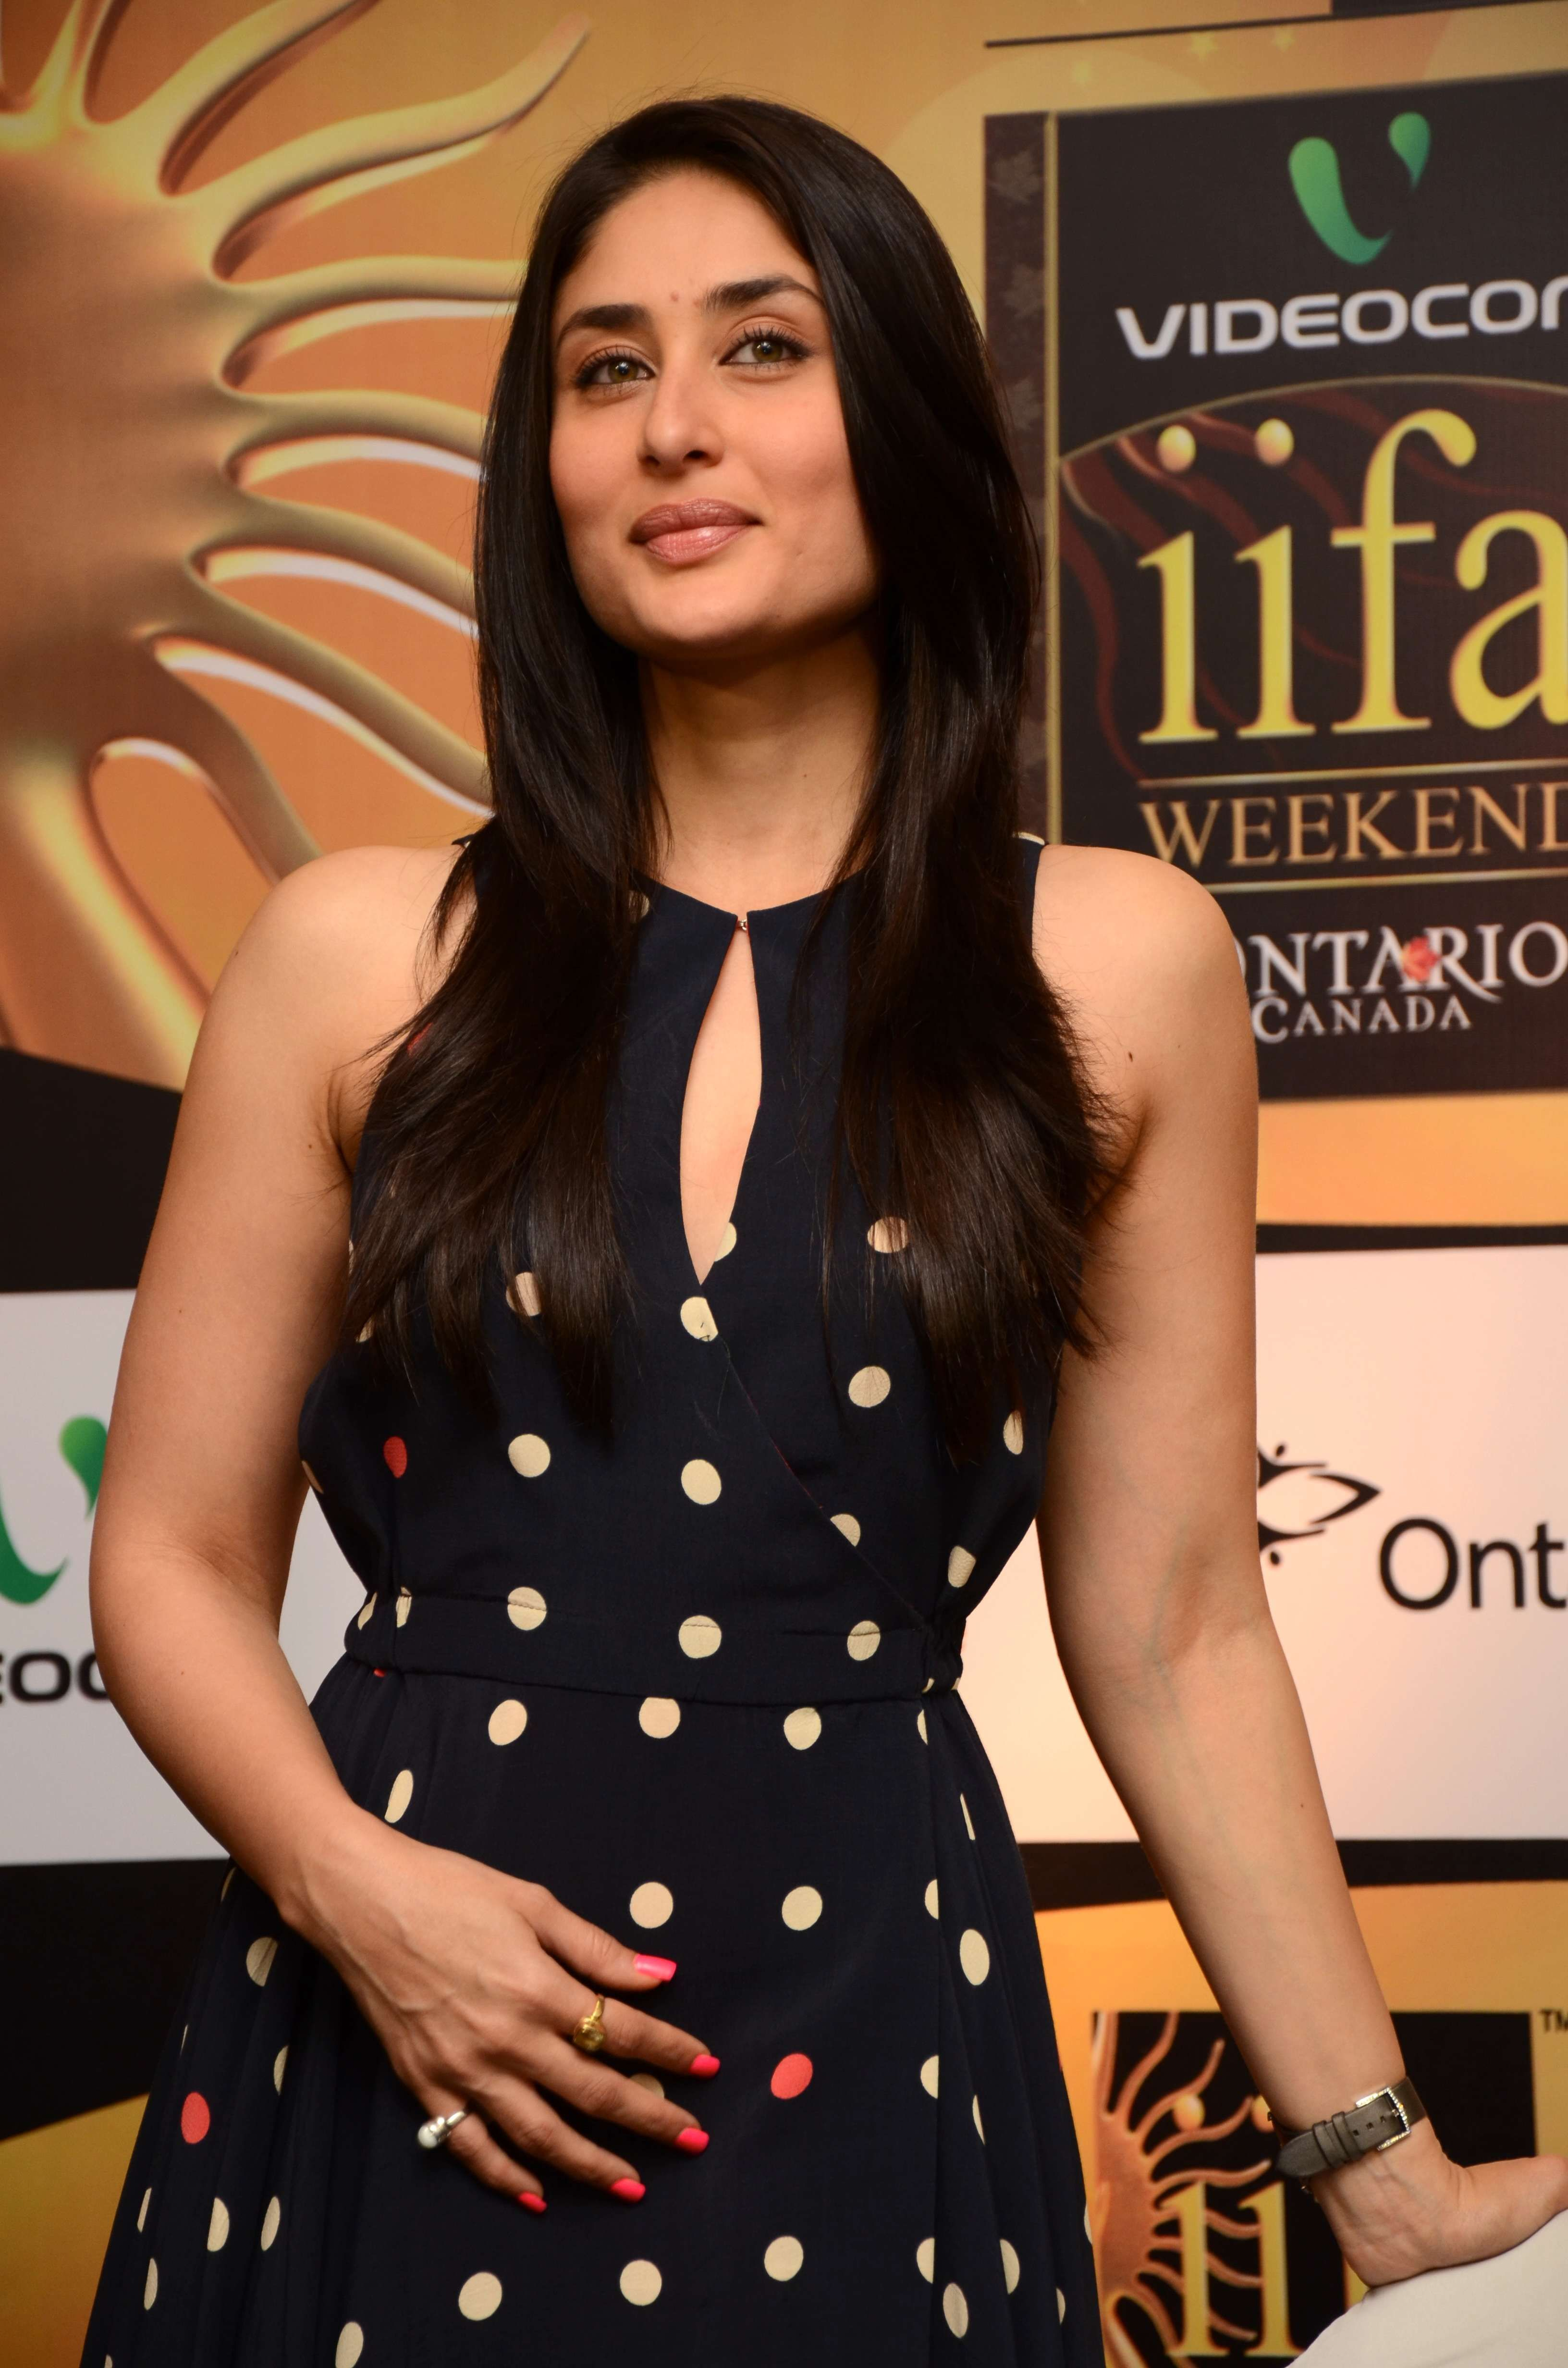 her style! (With images) Bollywood celebrities, Fashion